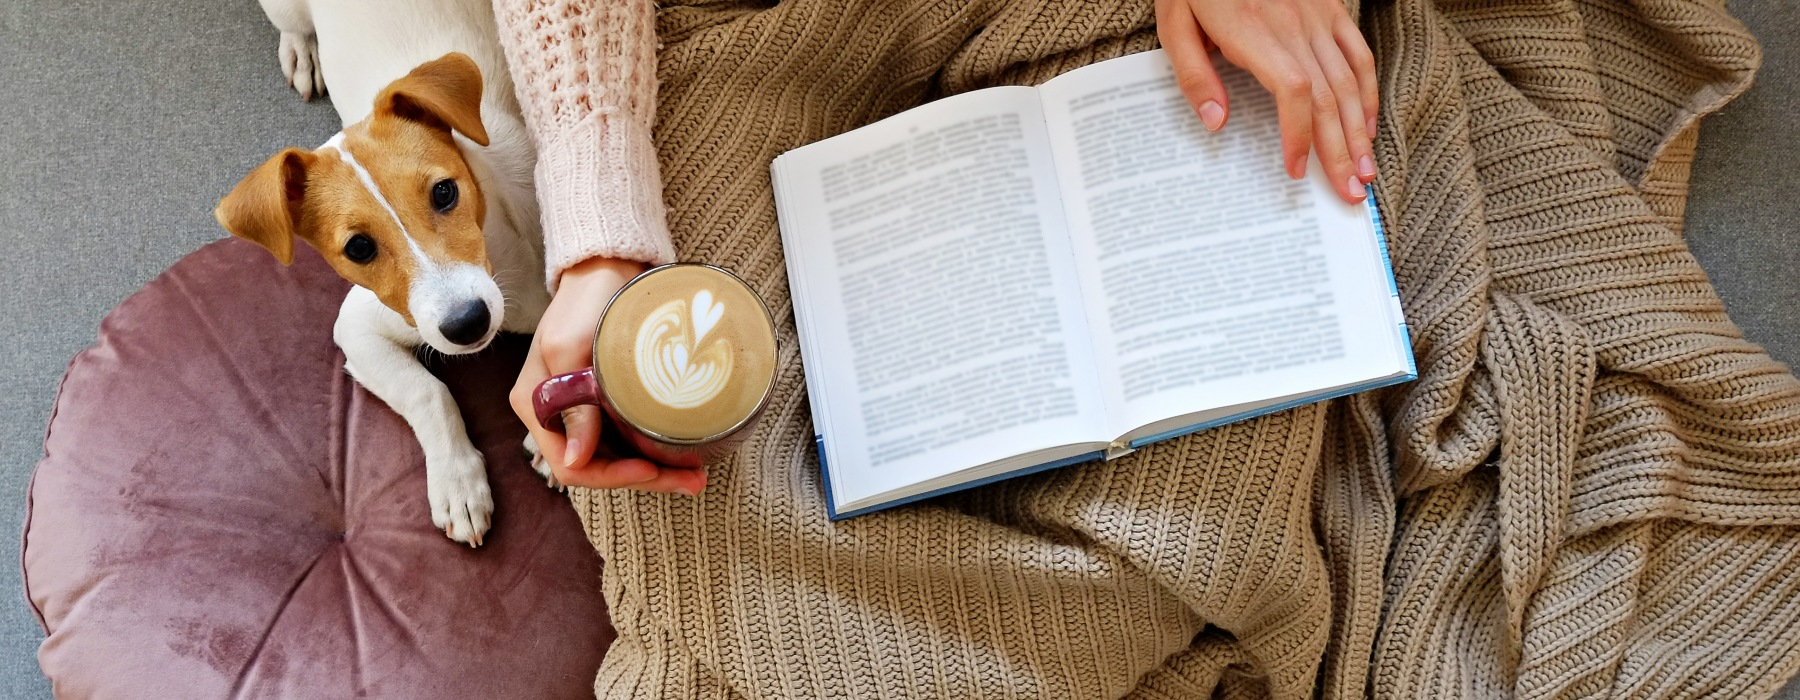 Person reading book with coffee and dog